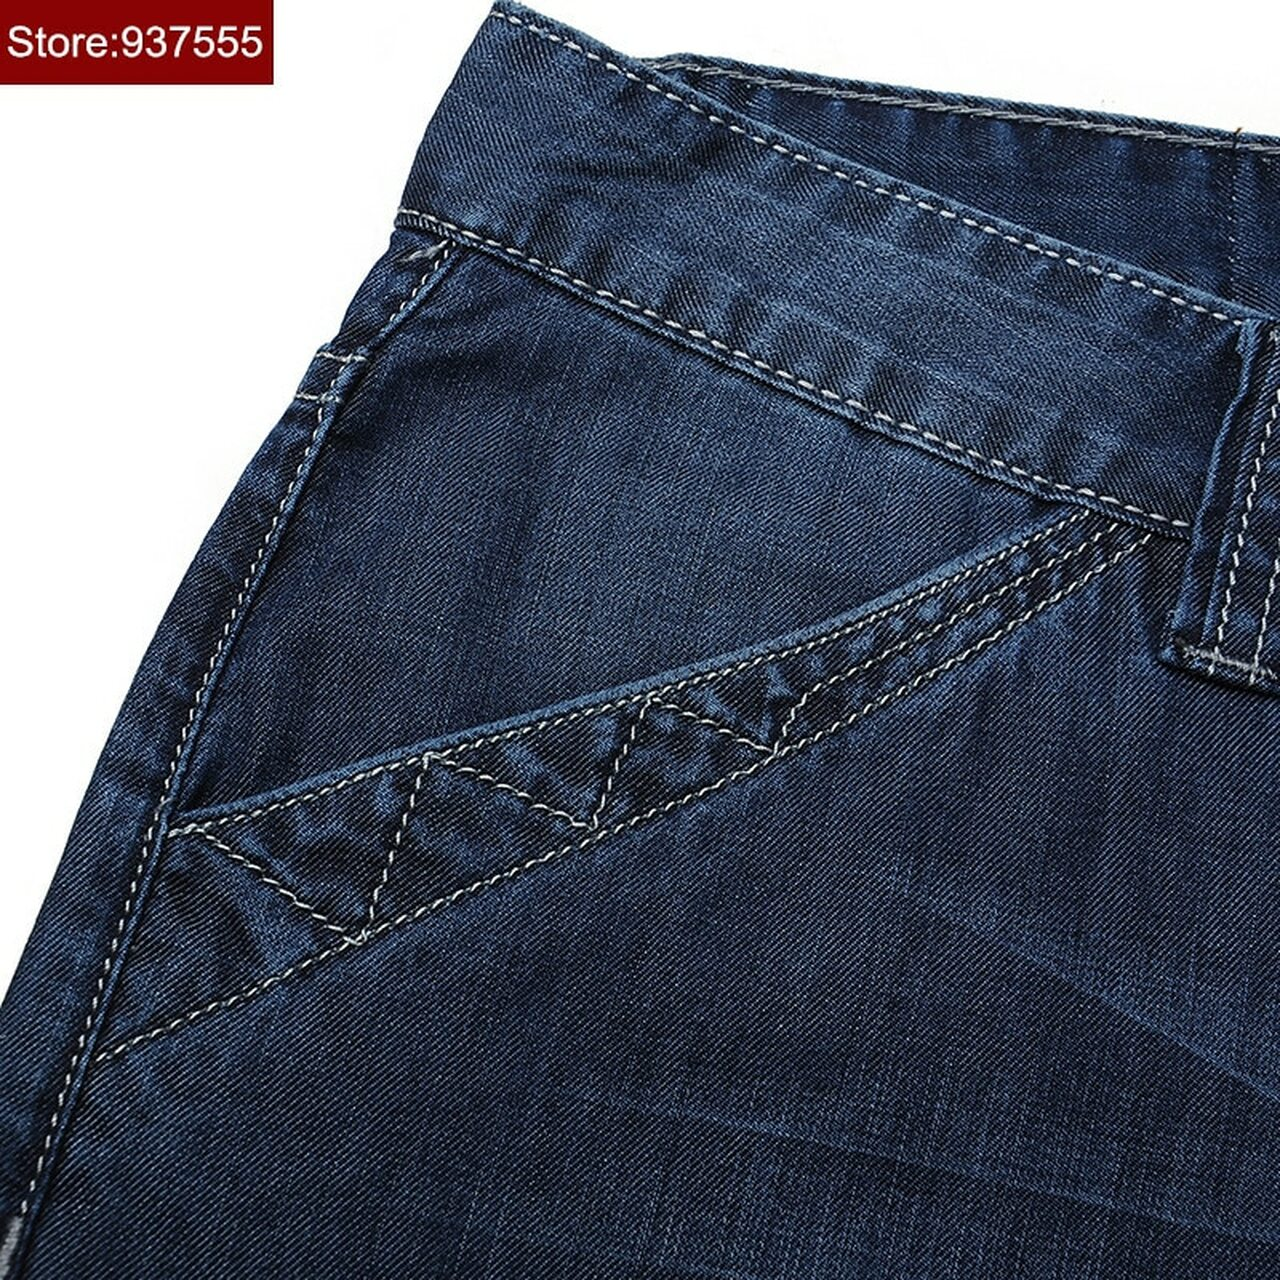 050b5dd59ac3e ... 2018 New Brand Short Jeans Men Summer Cotton Loose Jeans Shorts Casual  Straight Knee Length High ...